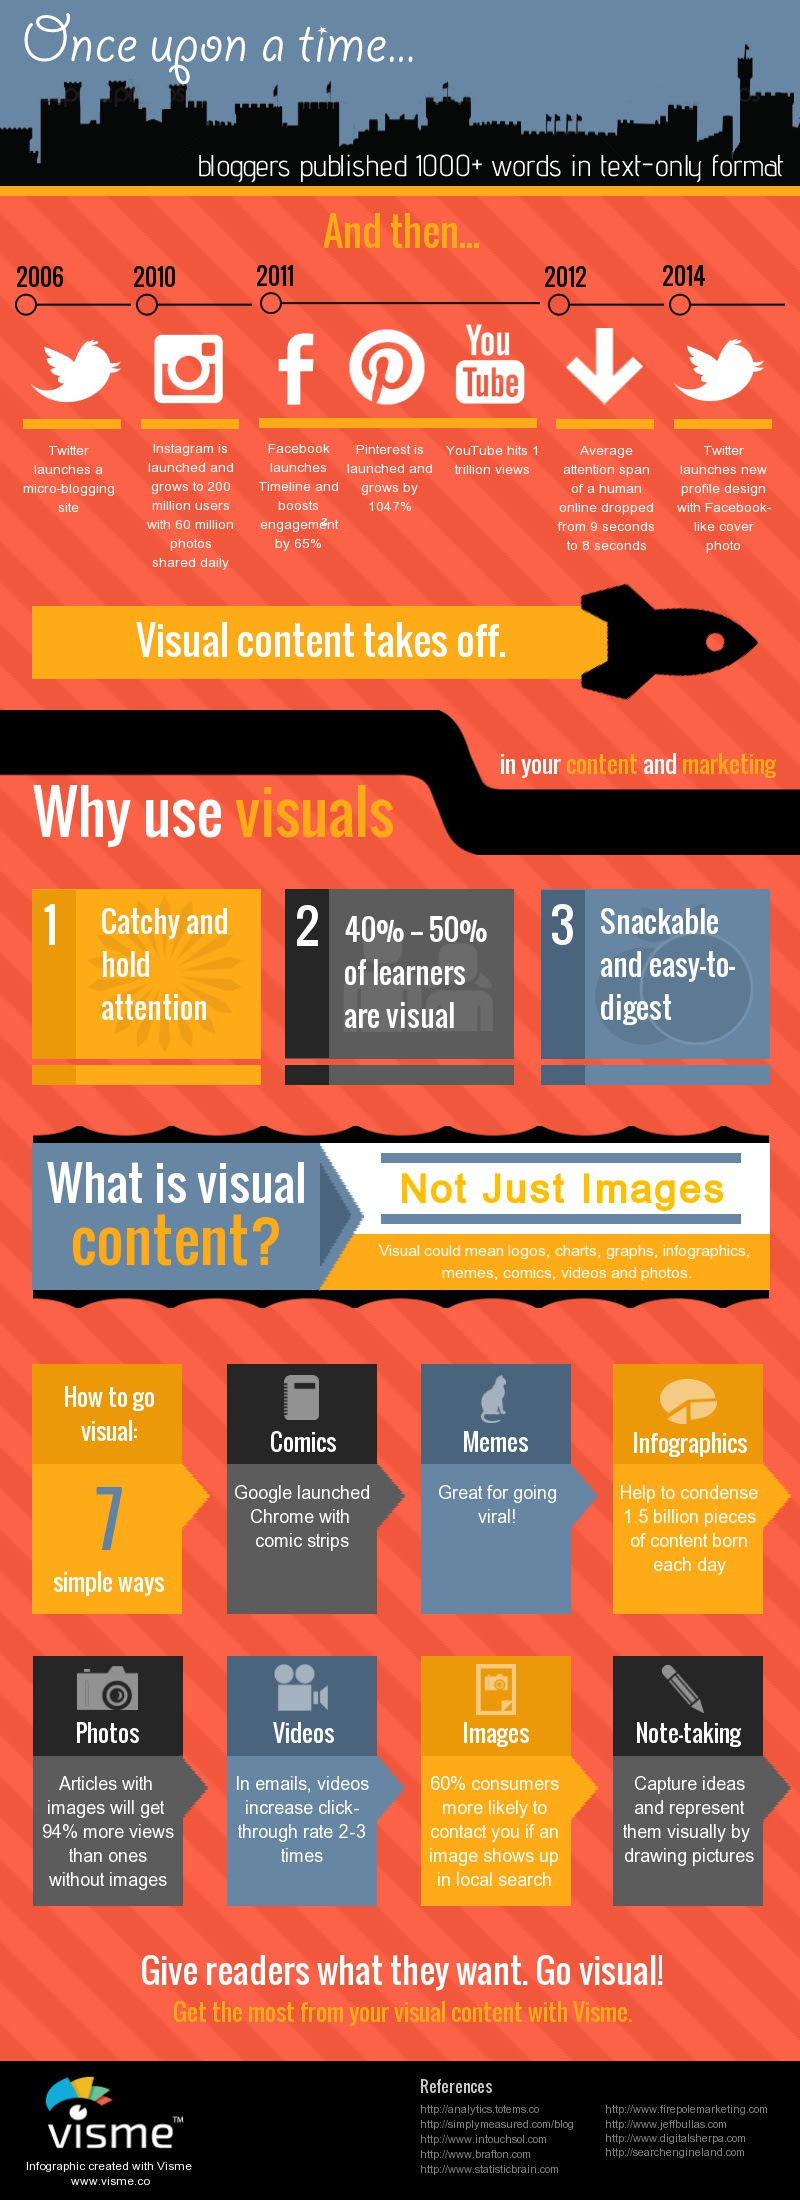 Infographic: Once Upon a Time Bloggers Published 1000+ Words in Text Only Format #infographic